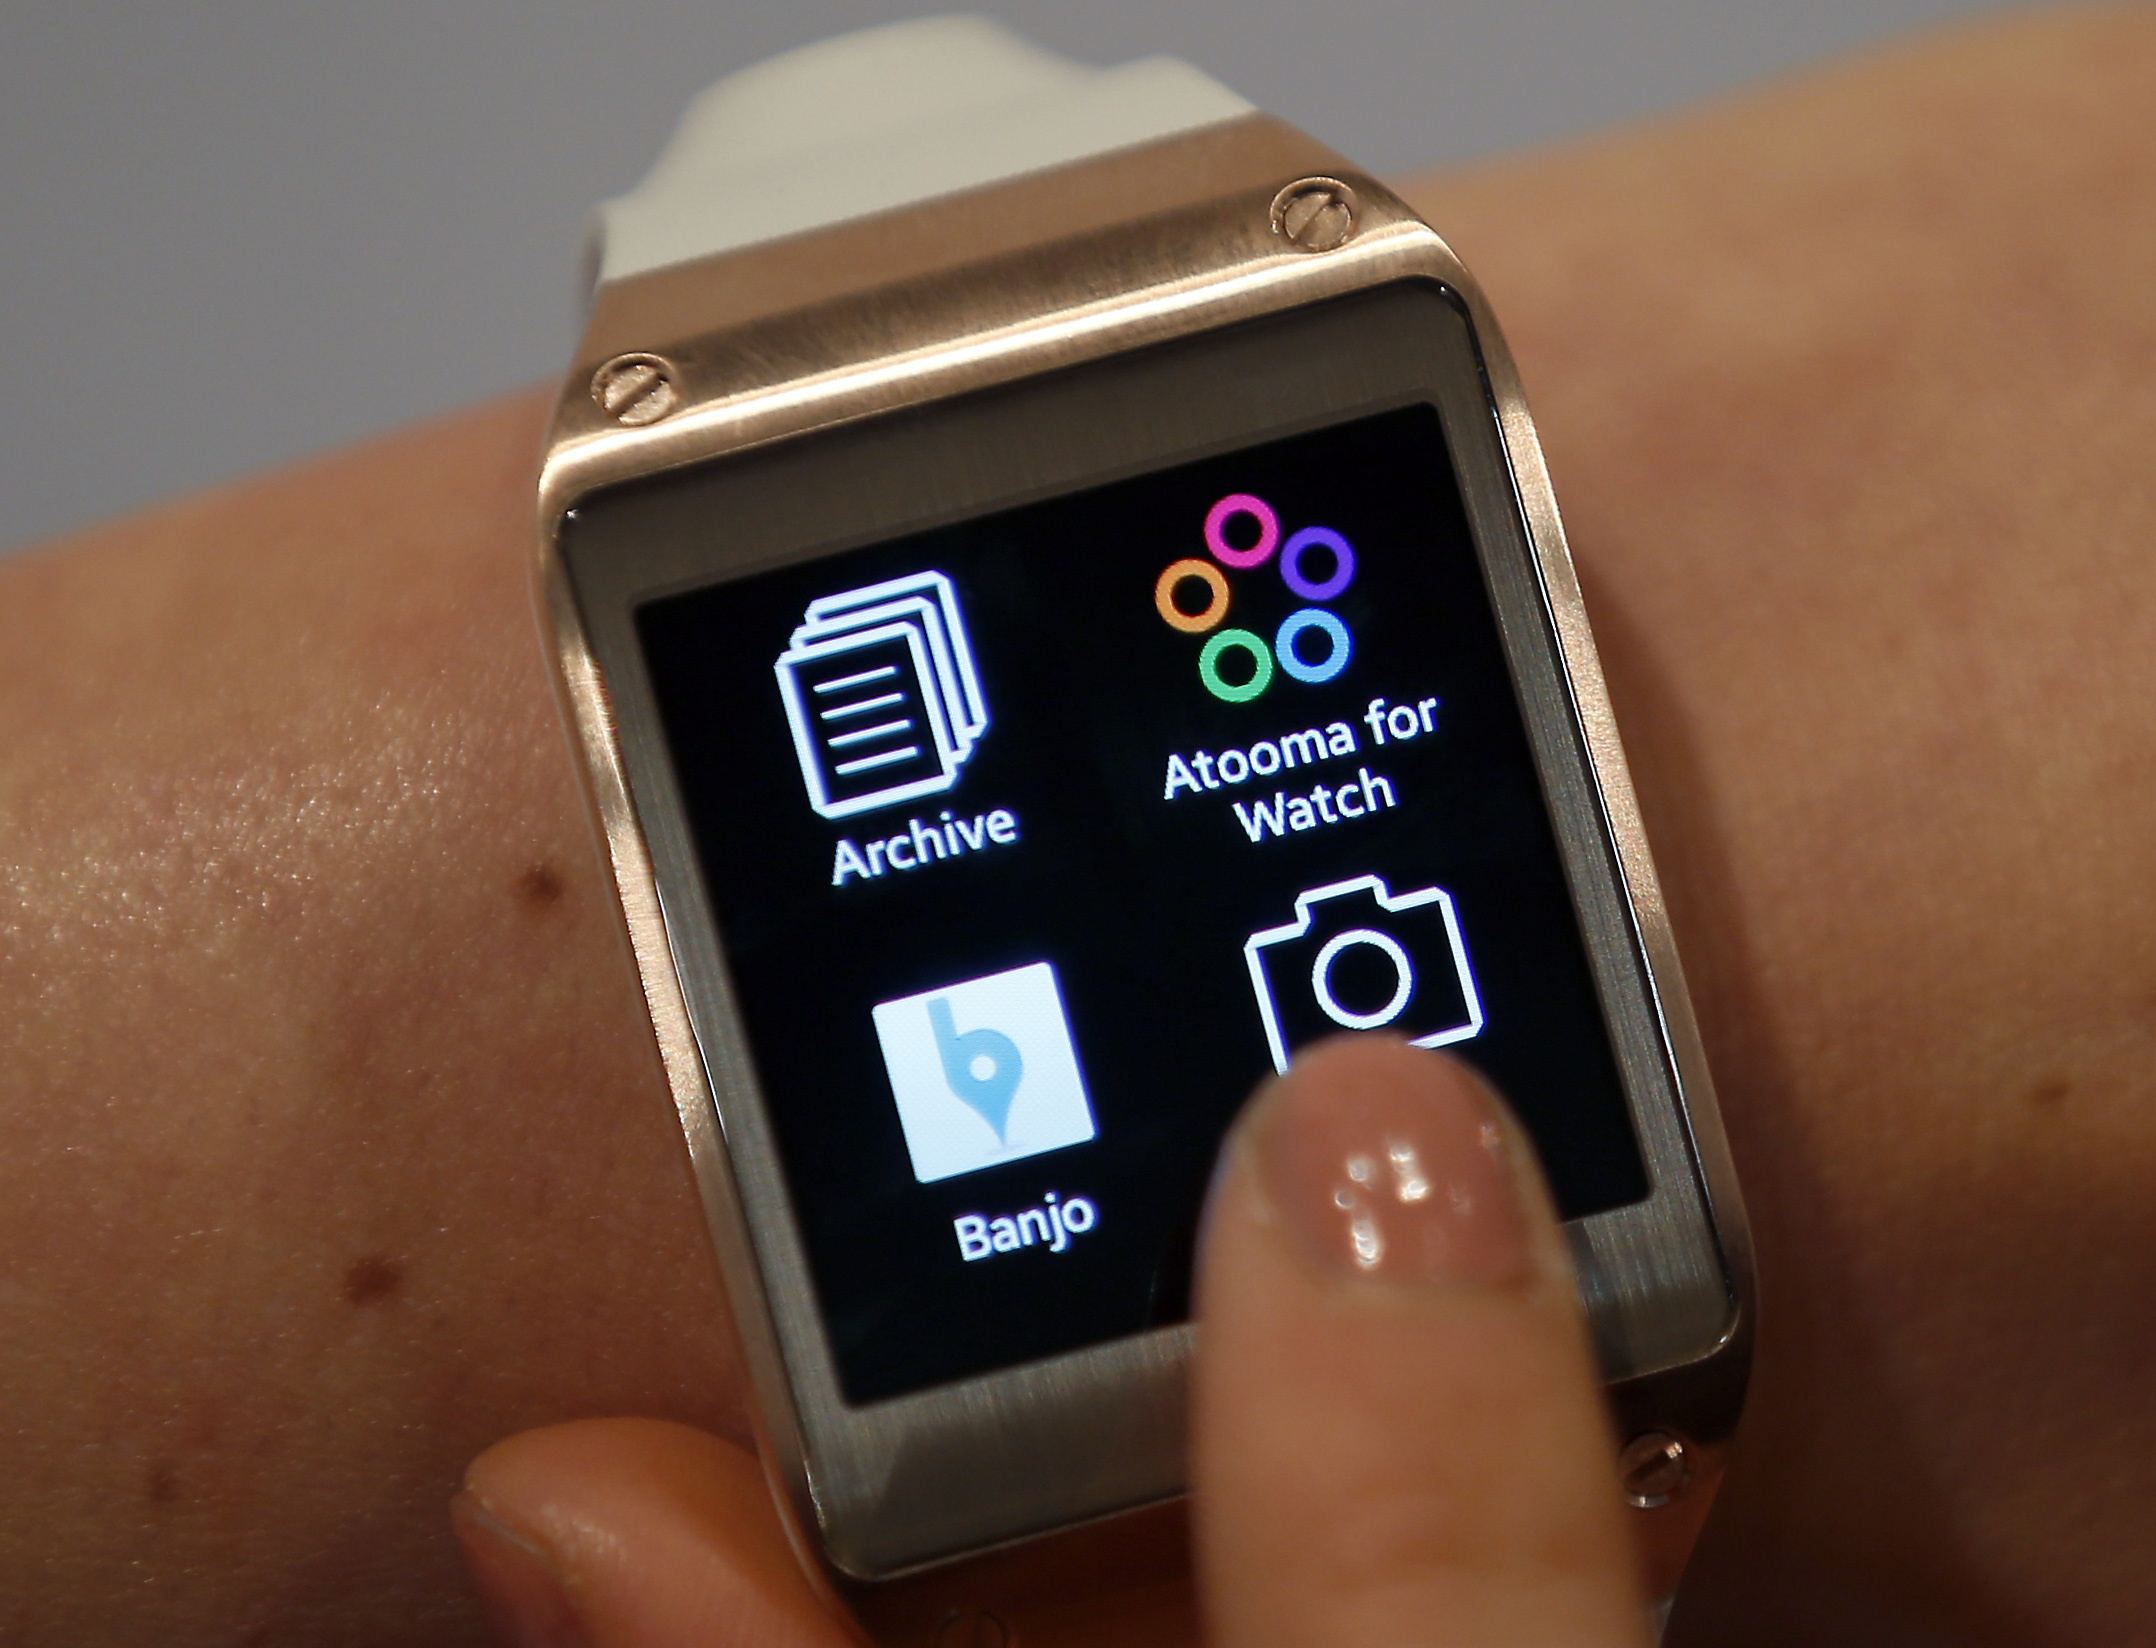 The Galaxy Gear costs $300, and for now it only works with the Galaxy Note 3.